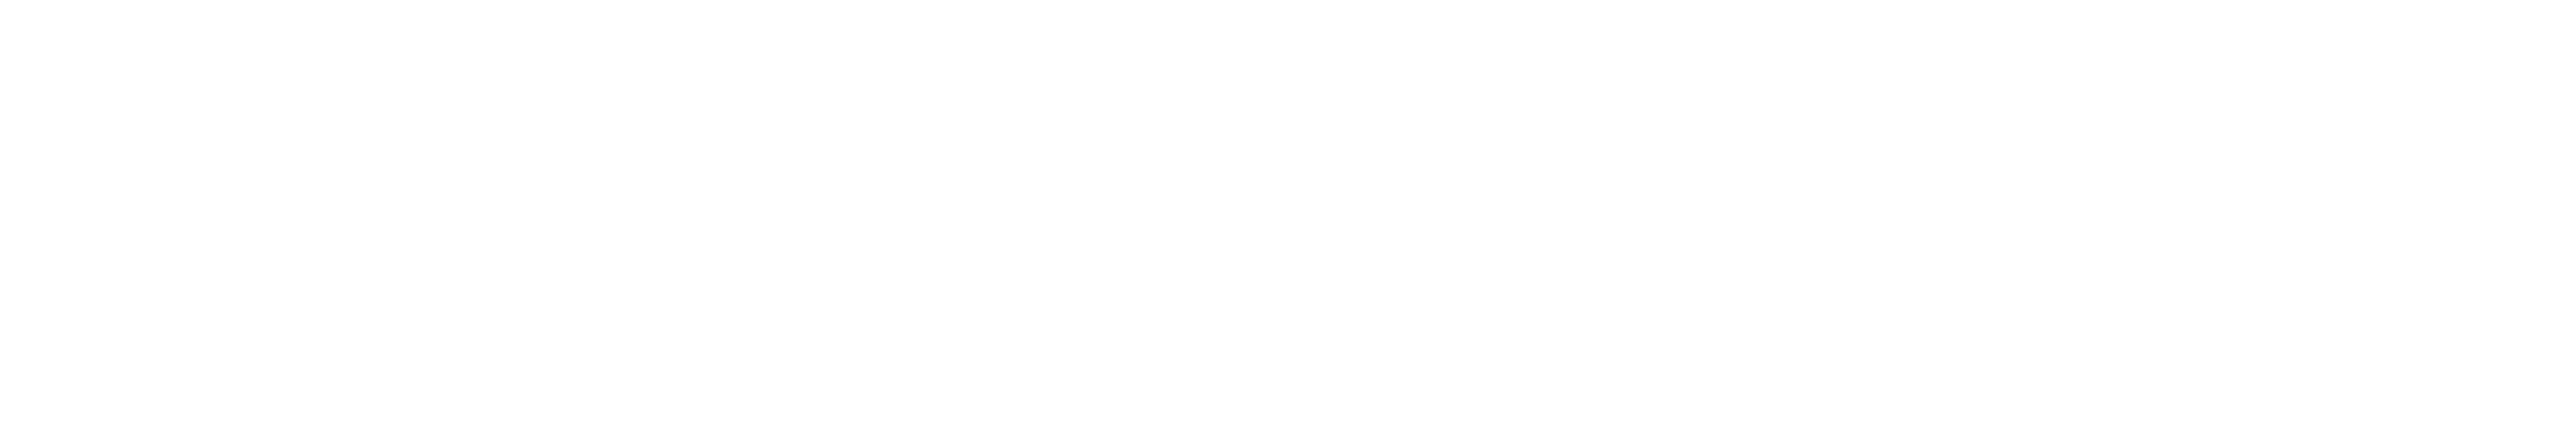 logo-combonianos-white.png